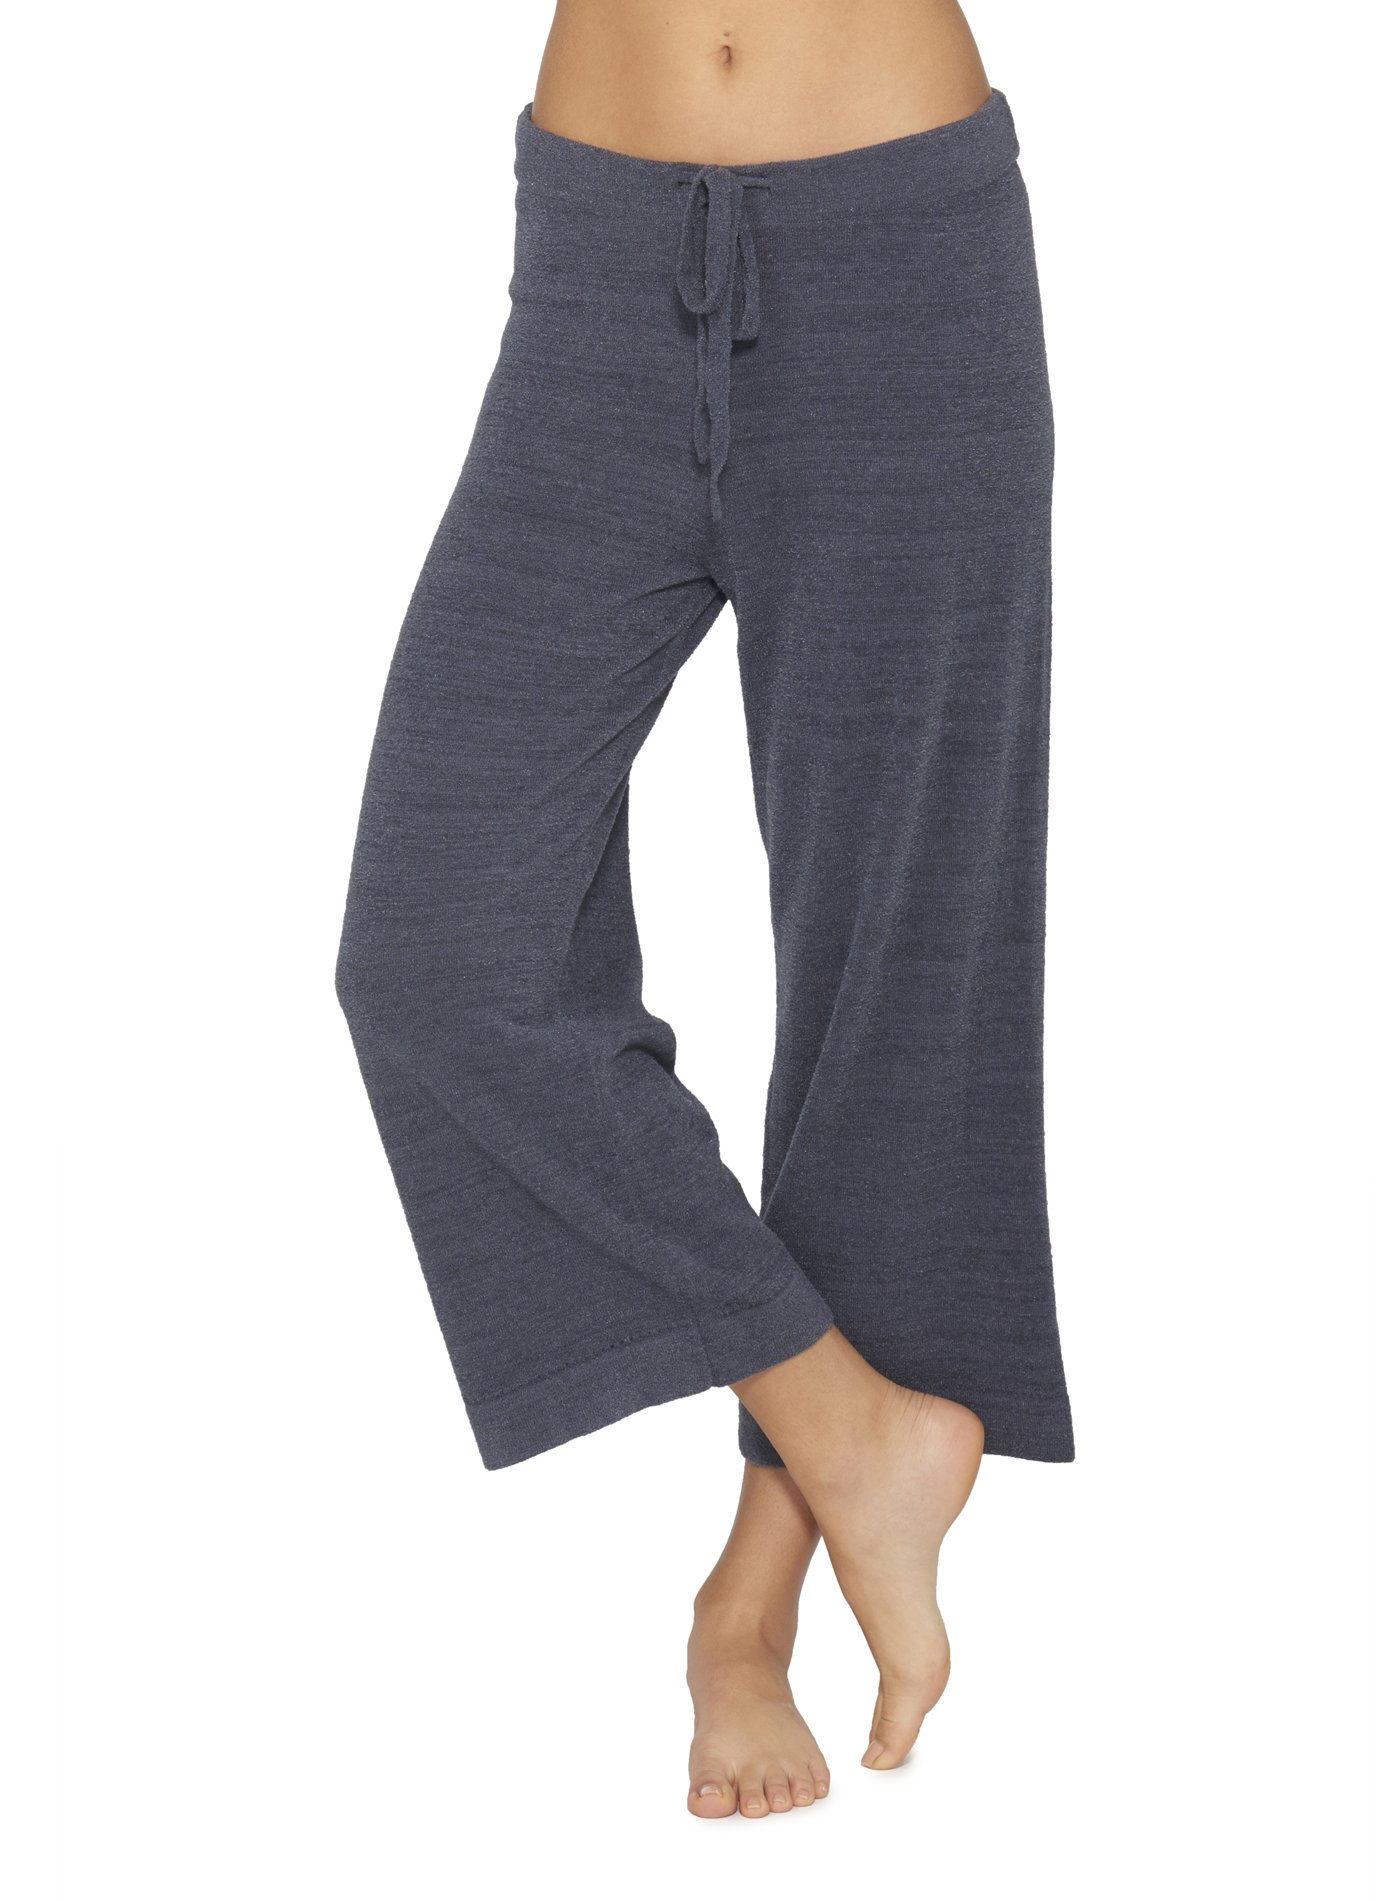 Barefoot Dreams CozyChic Ultra Lite Culotte Capri Pants - Medium - By Barefoot Dreams by Barefoot Dreams (Image #1)